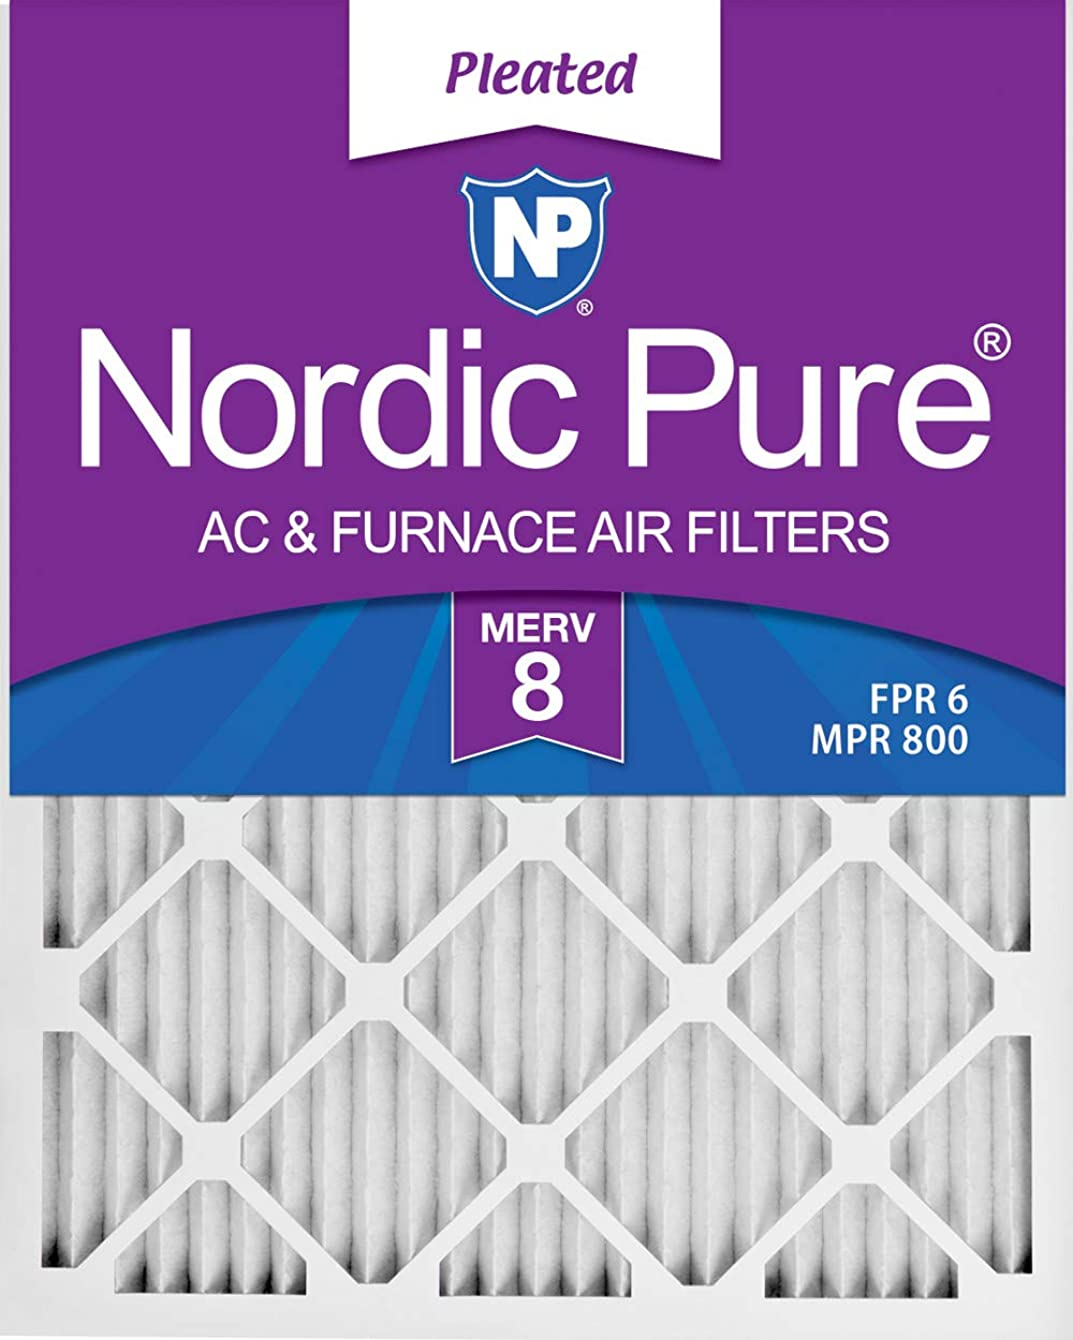 Nordic Pure 17_1/4x29_1/4x1 Exact MERV 8 Pleated AC Furnace Air Filters 4 Pack